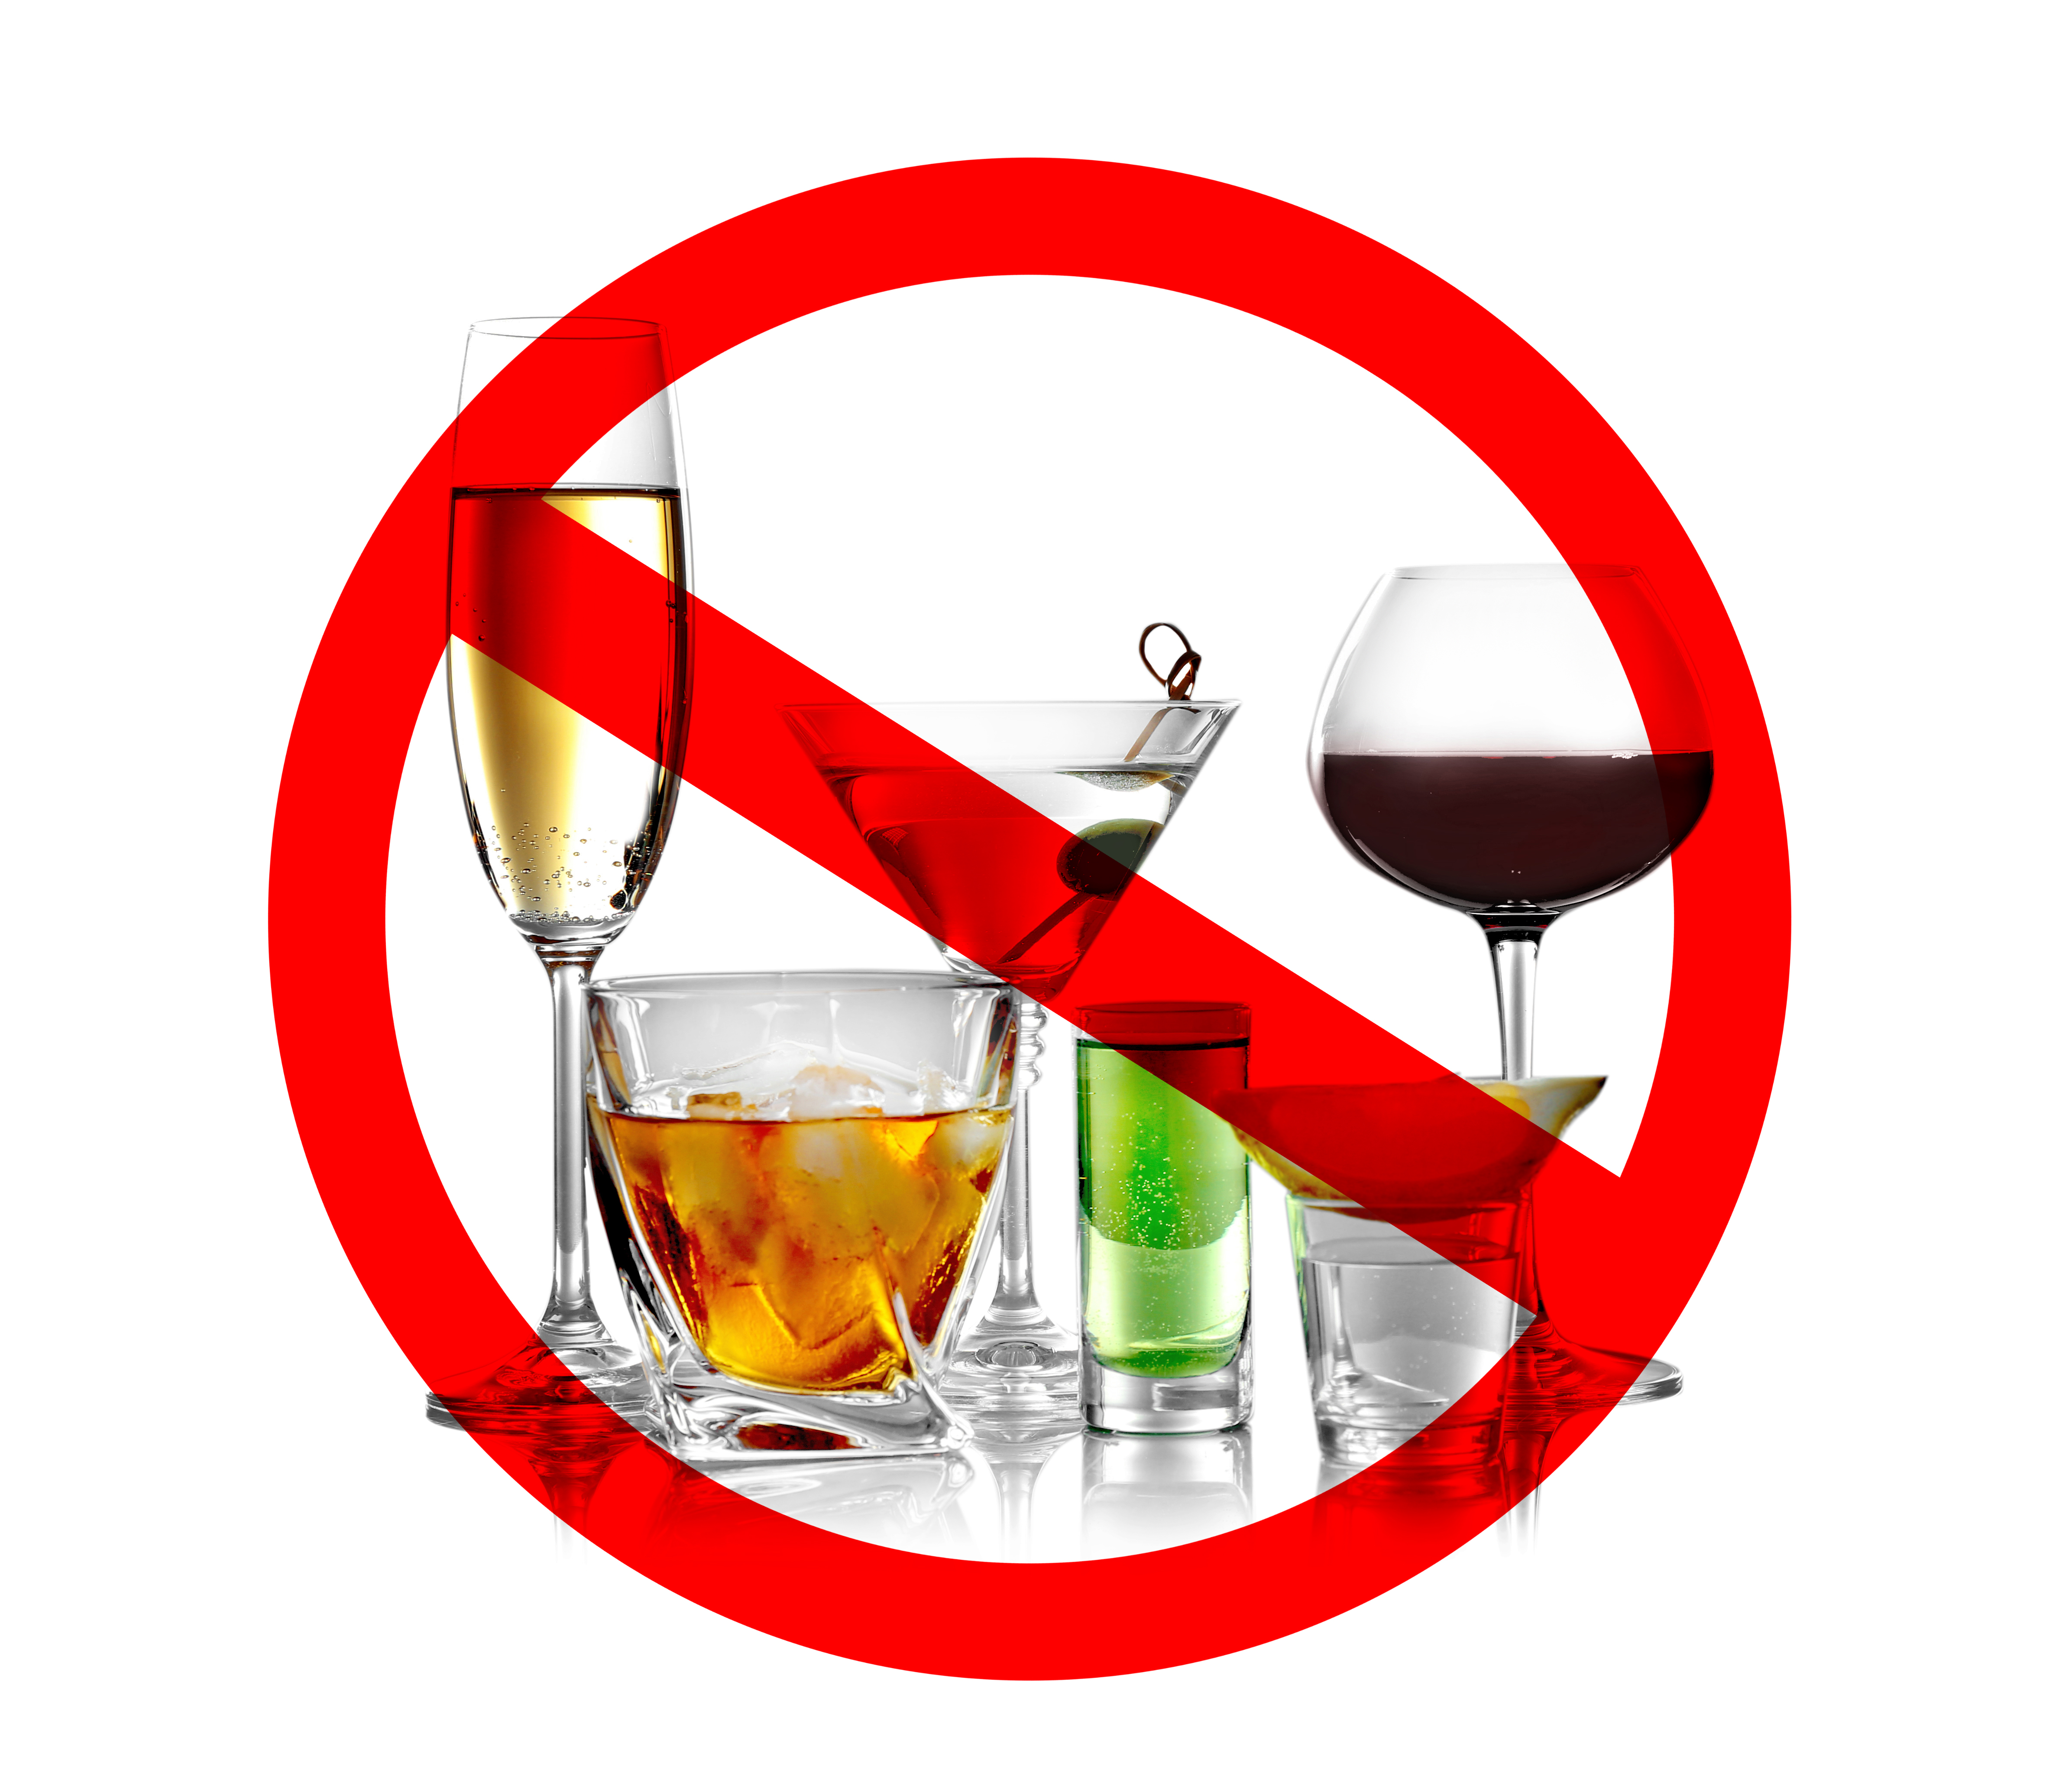 Foods to avoid: Alcohol